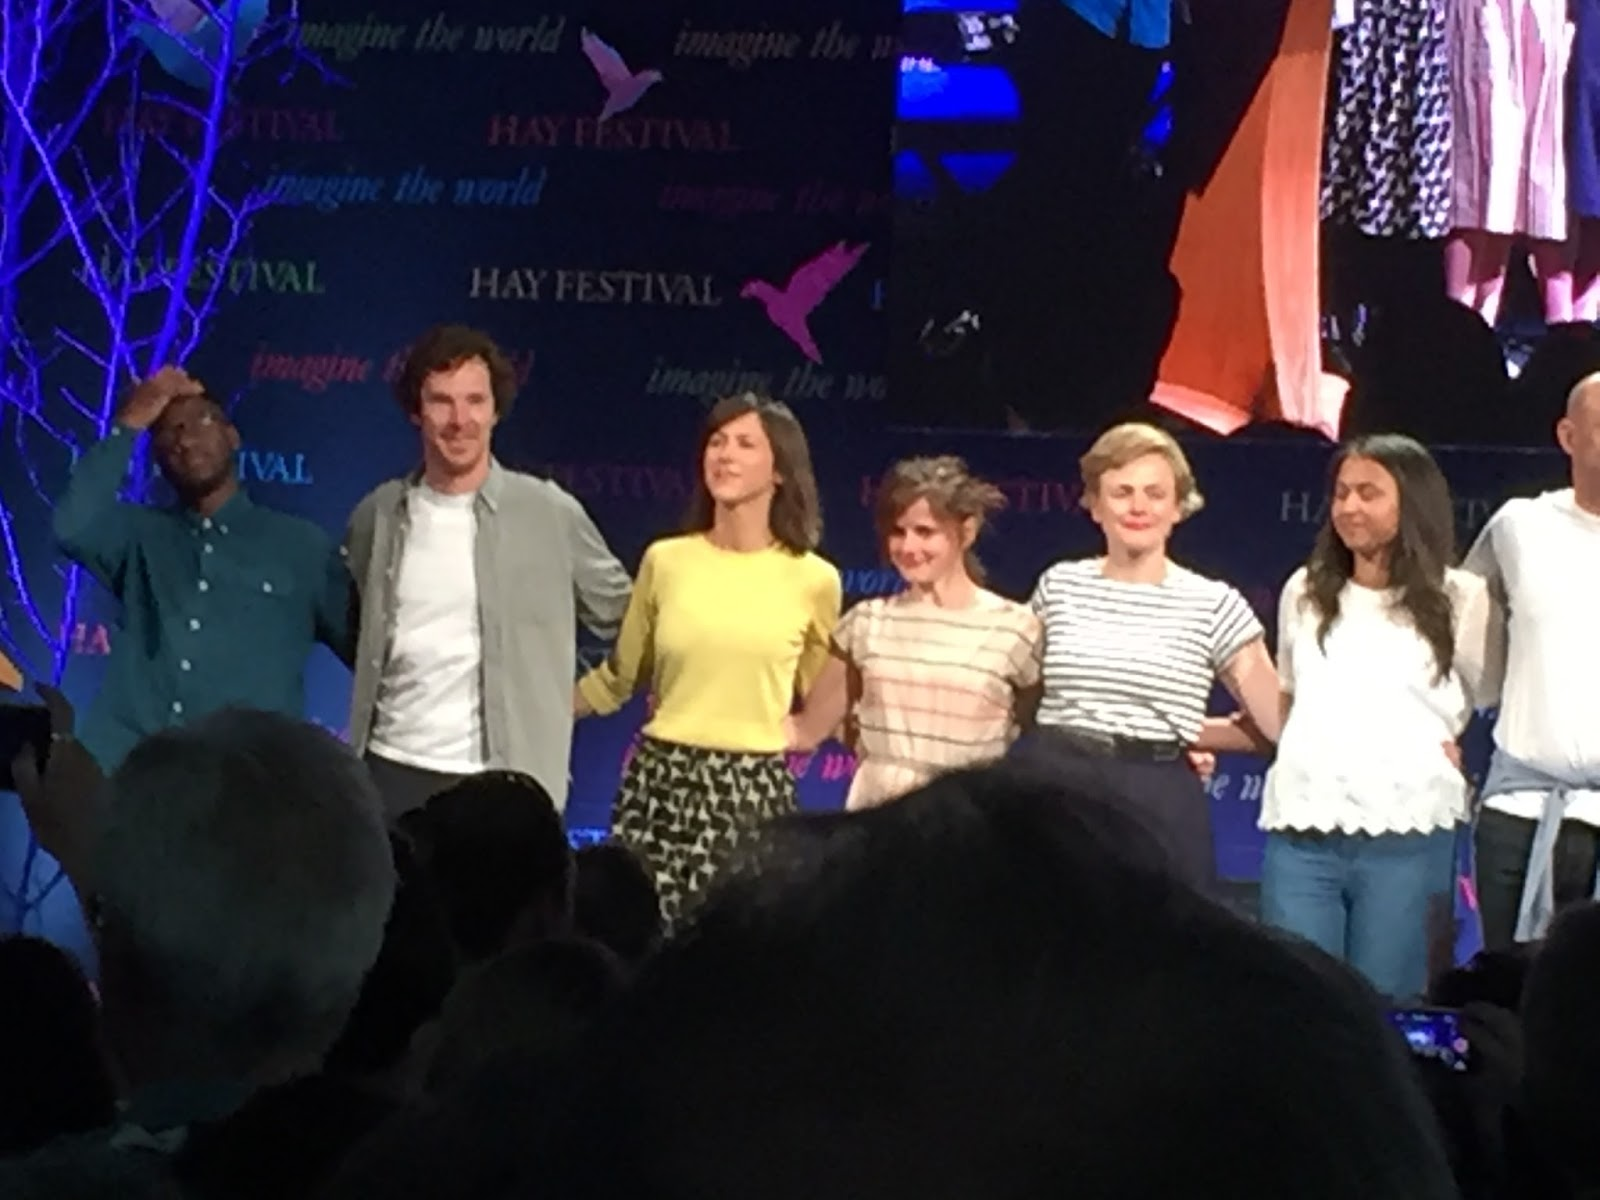 Benedict Cumberbatch, Louise Brealey and Sophie Hunter